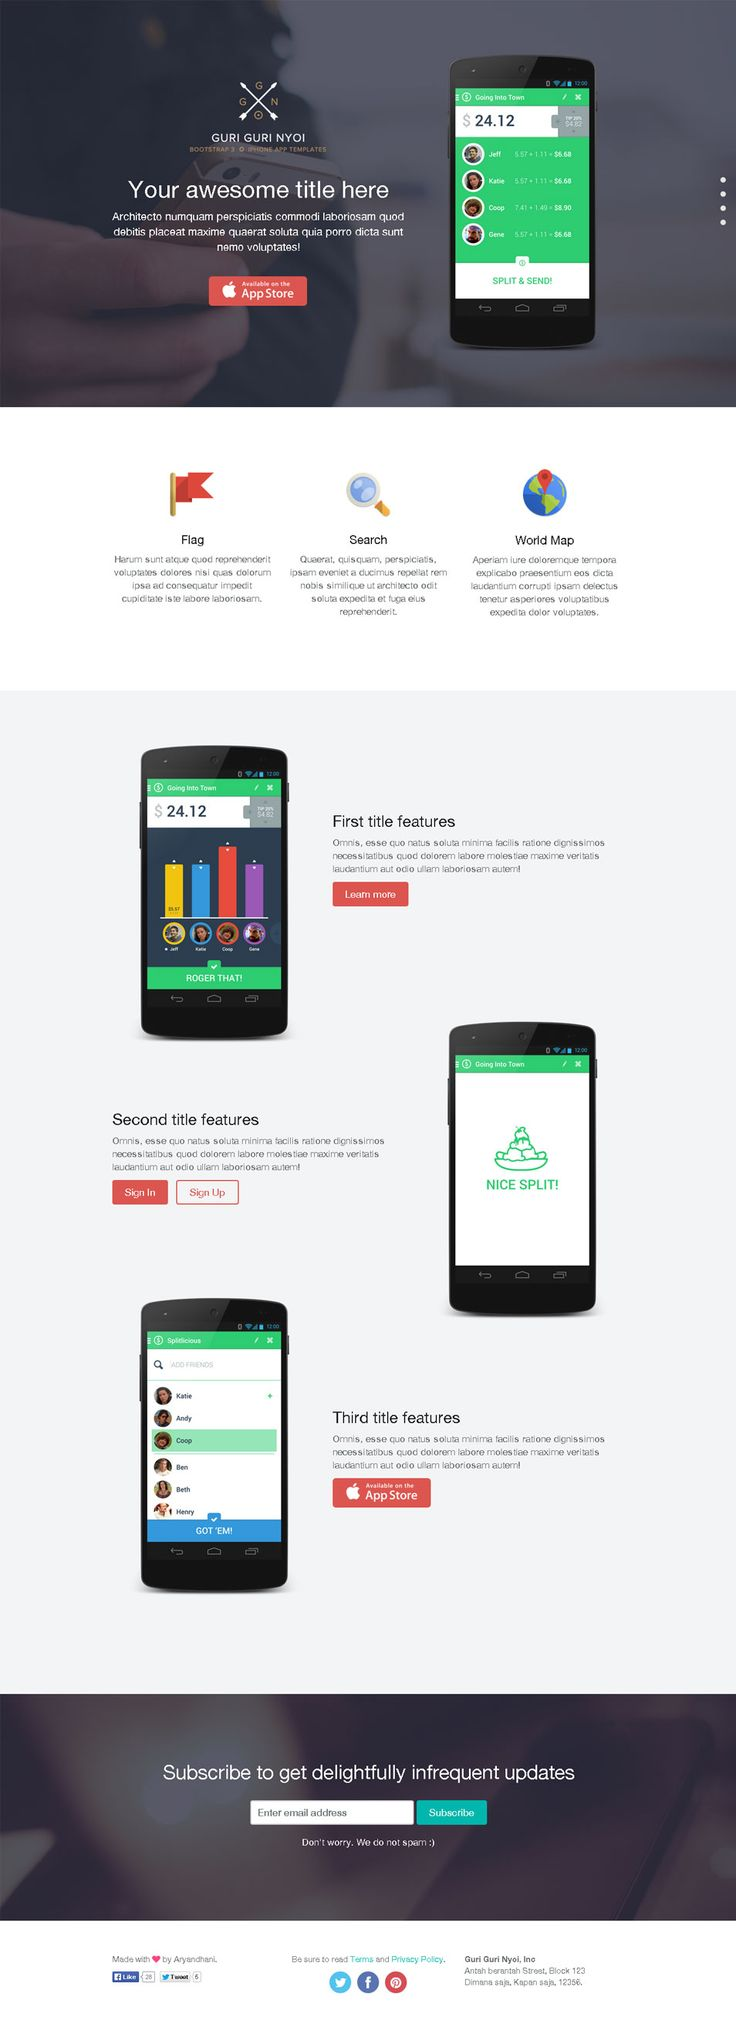 The perfect layout to Promote an App or an App development business. Guri Guri Nyoi_Screen 1